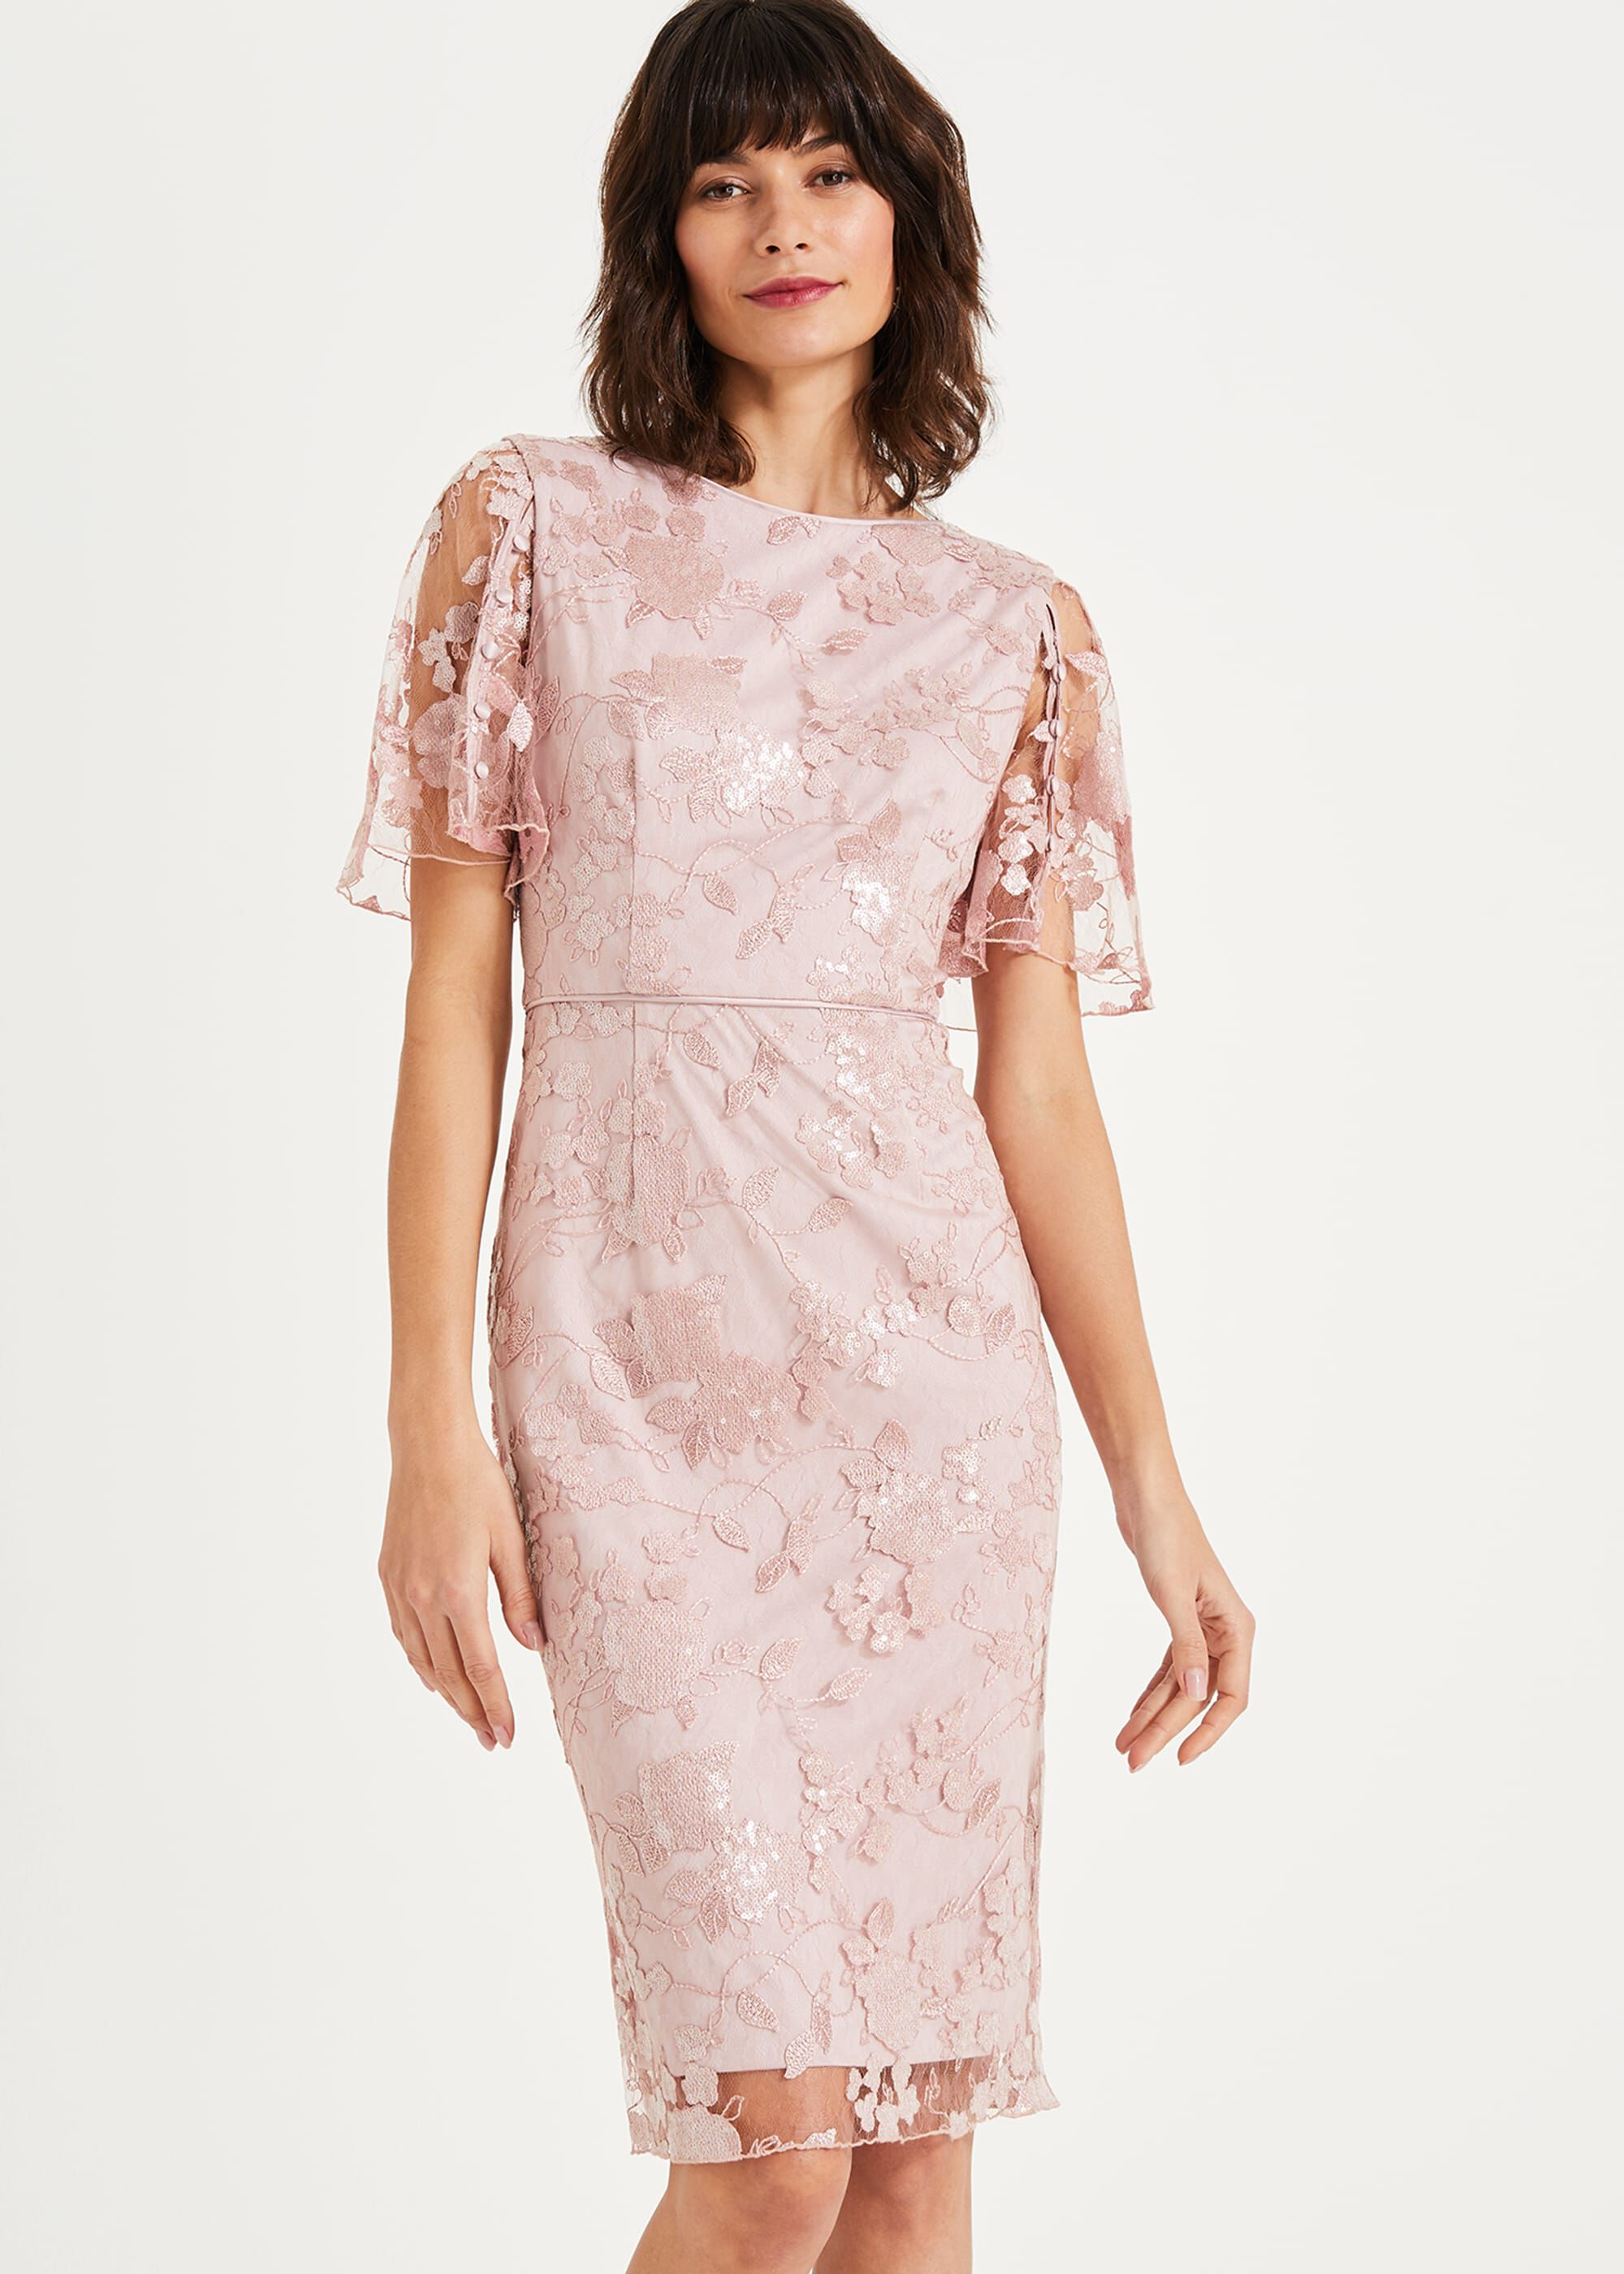 Phase Eight Harlow Sequin Lace Dress, Pink, Shift, Occasion Dress